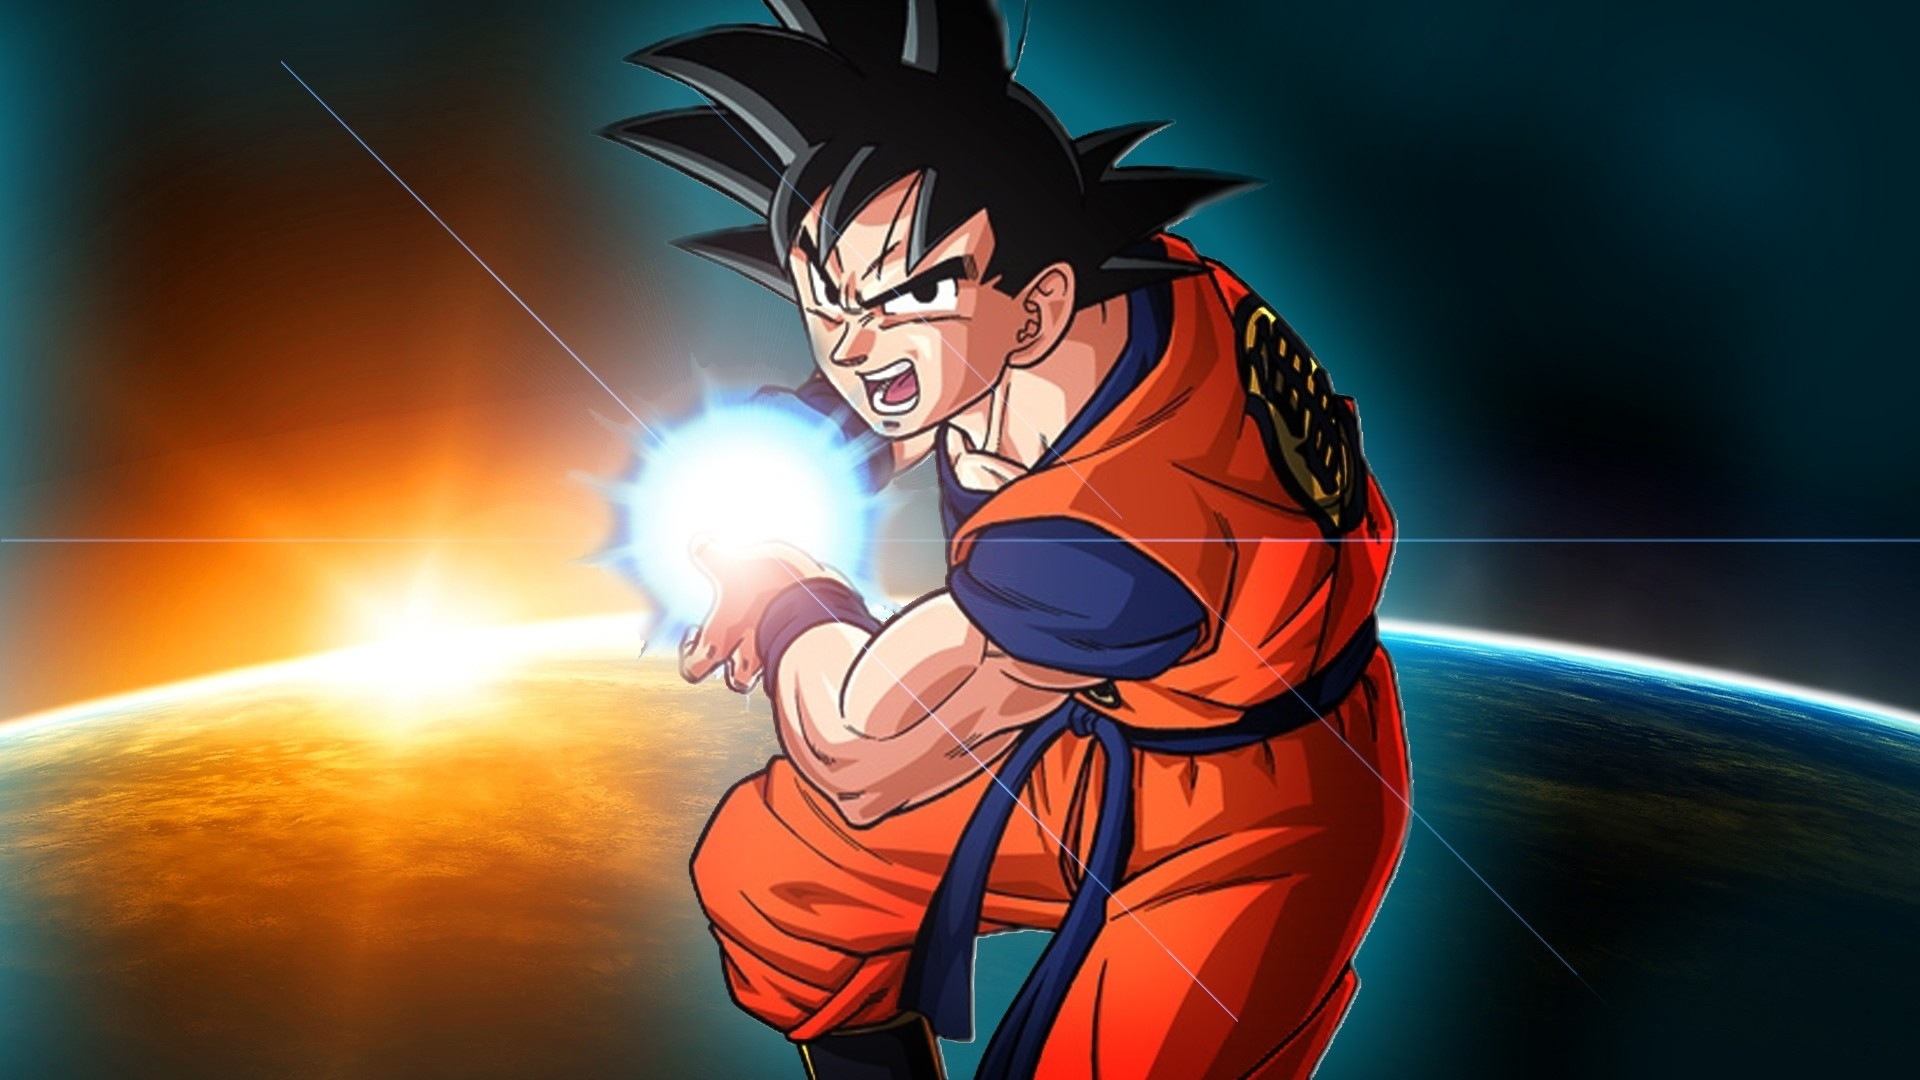 dbz wallpaper hd goku 1024×768 dragon ball z 3d wallpapers (39